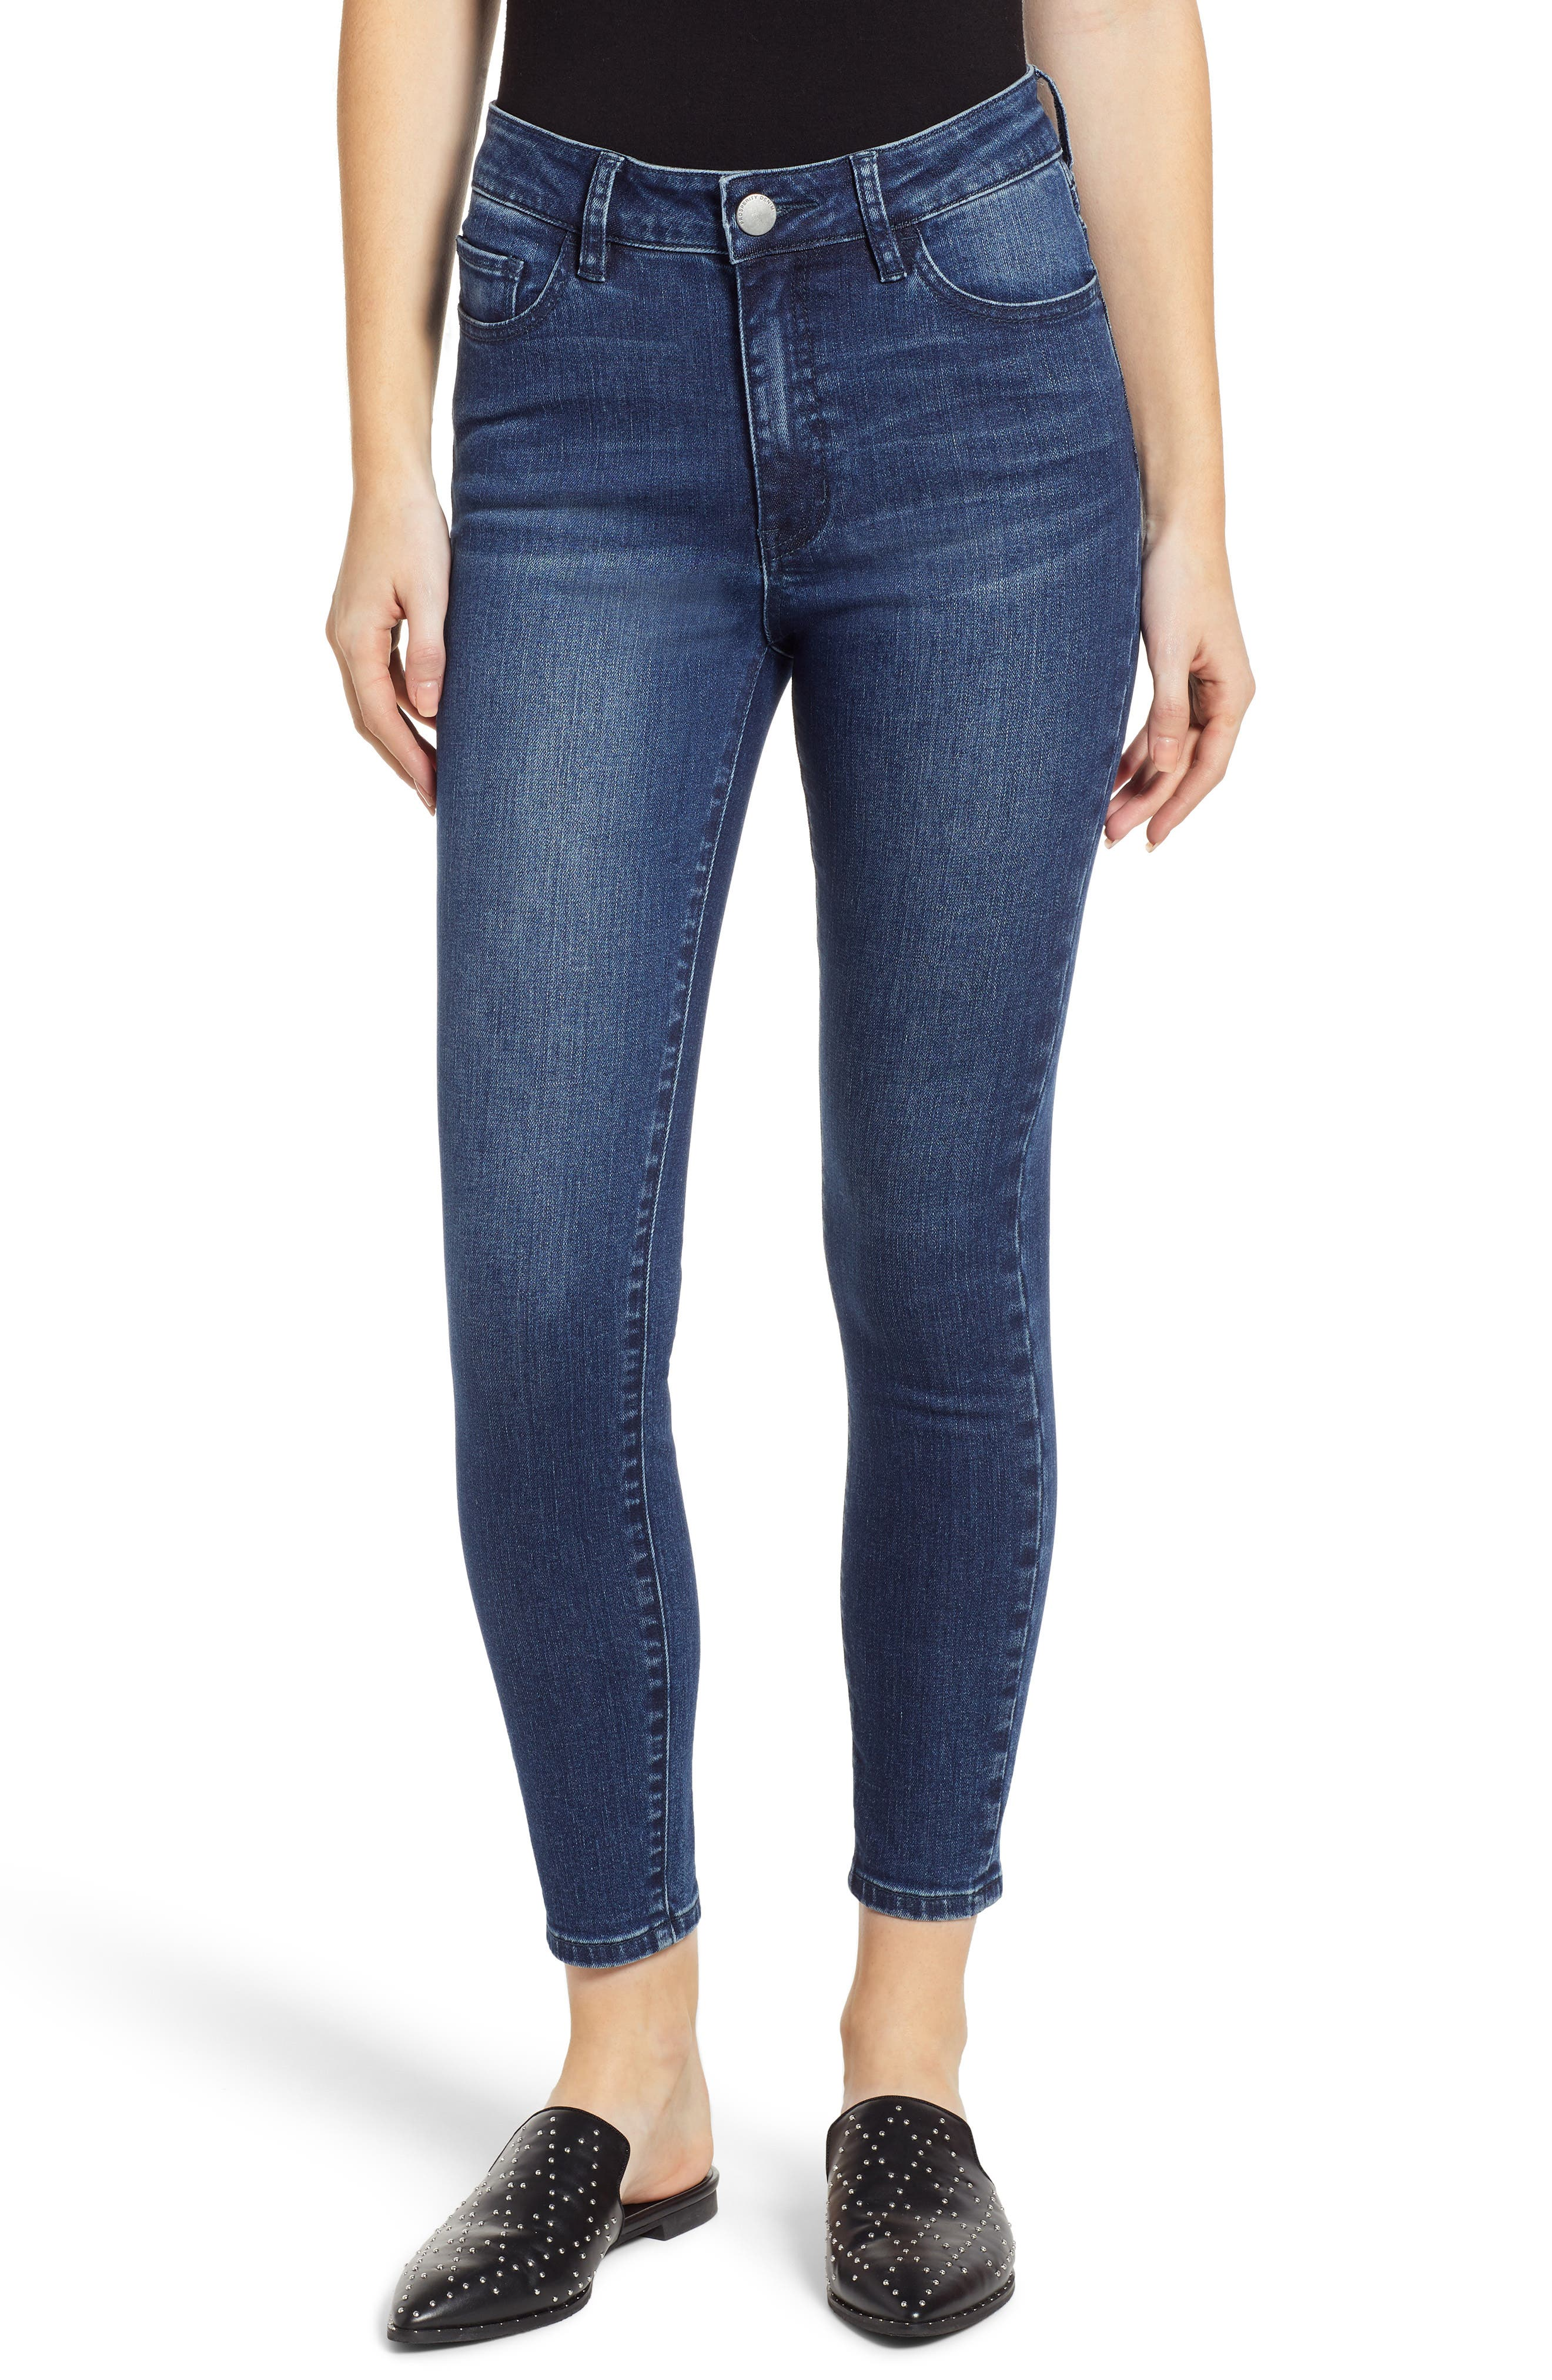 PROSPERITY DENIM High Waist Ankle Skinny Jeans, Main, color, DARK WASH